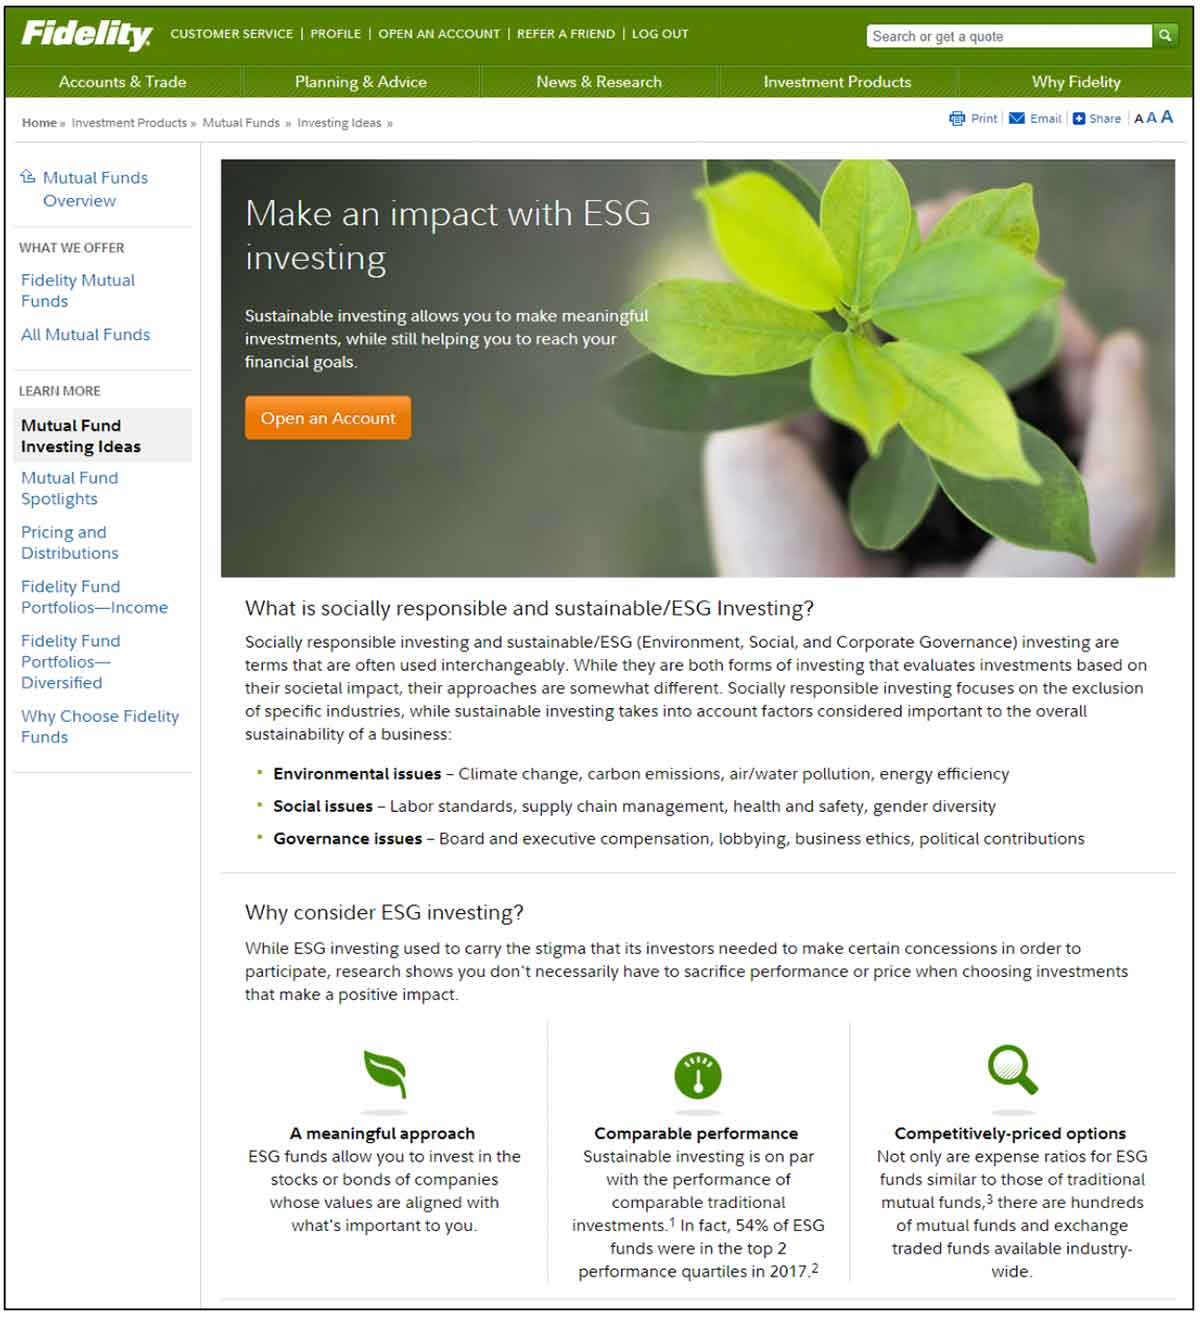 Fidelity manages to successfully promote ESG/SRI offerings from public site hub